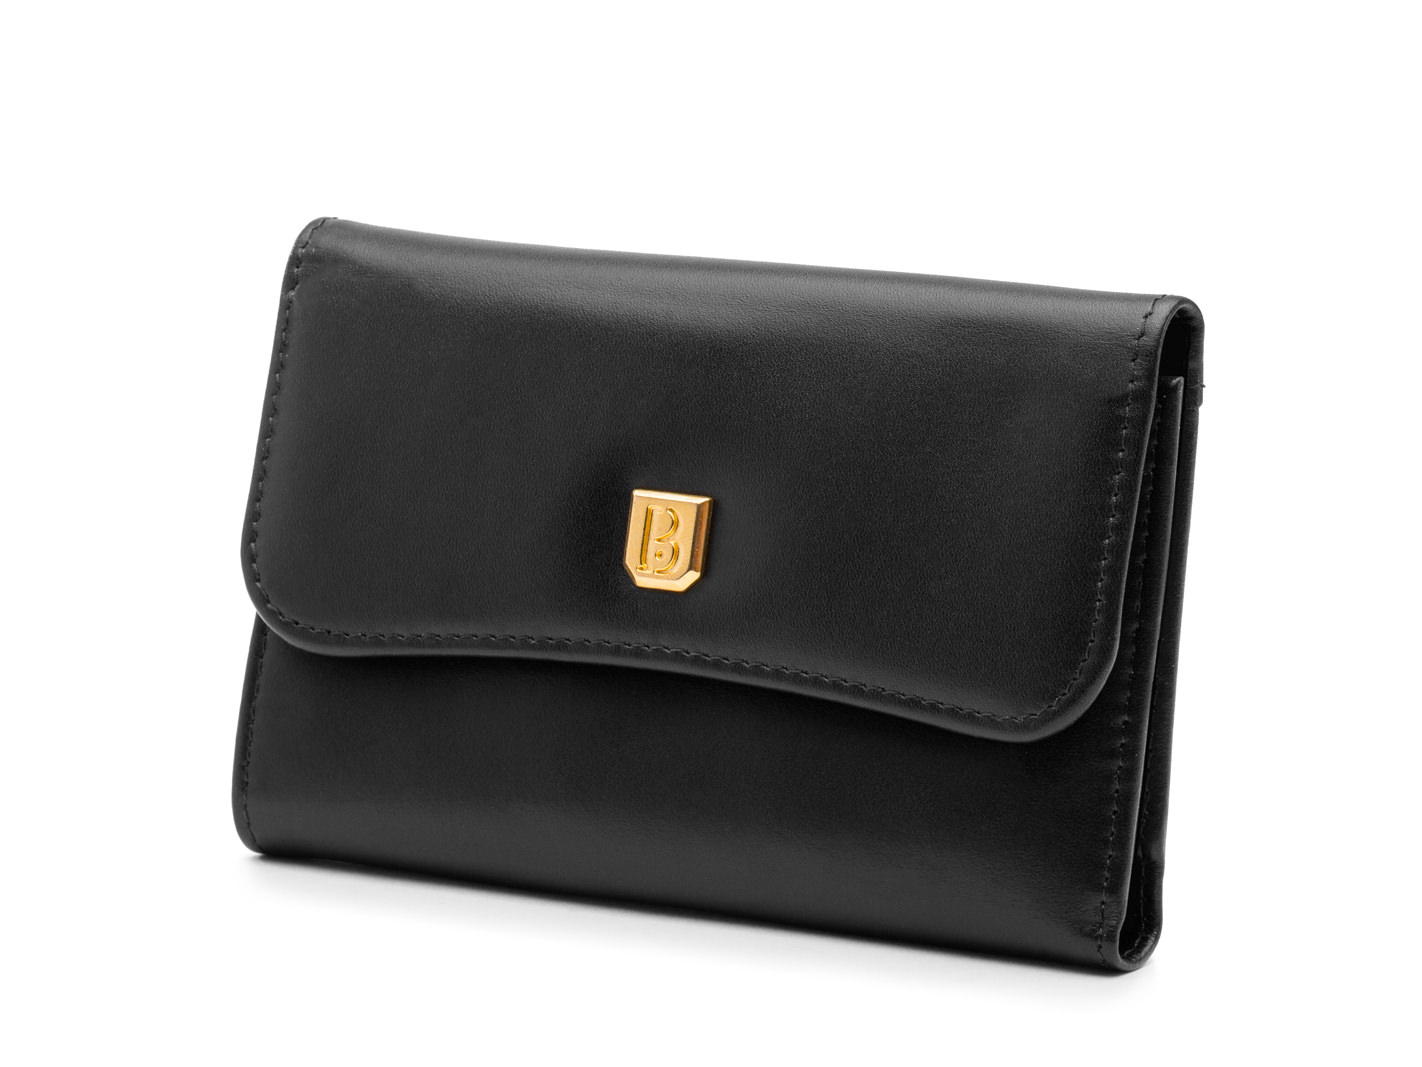 Soft Black ID French Purse-161 Soft Black - 161 Soft Black